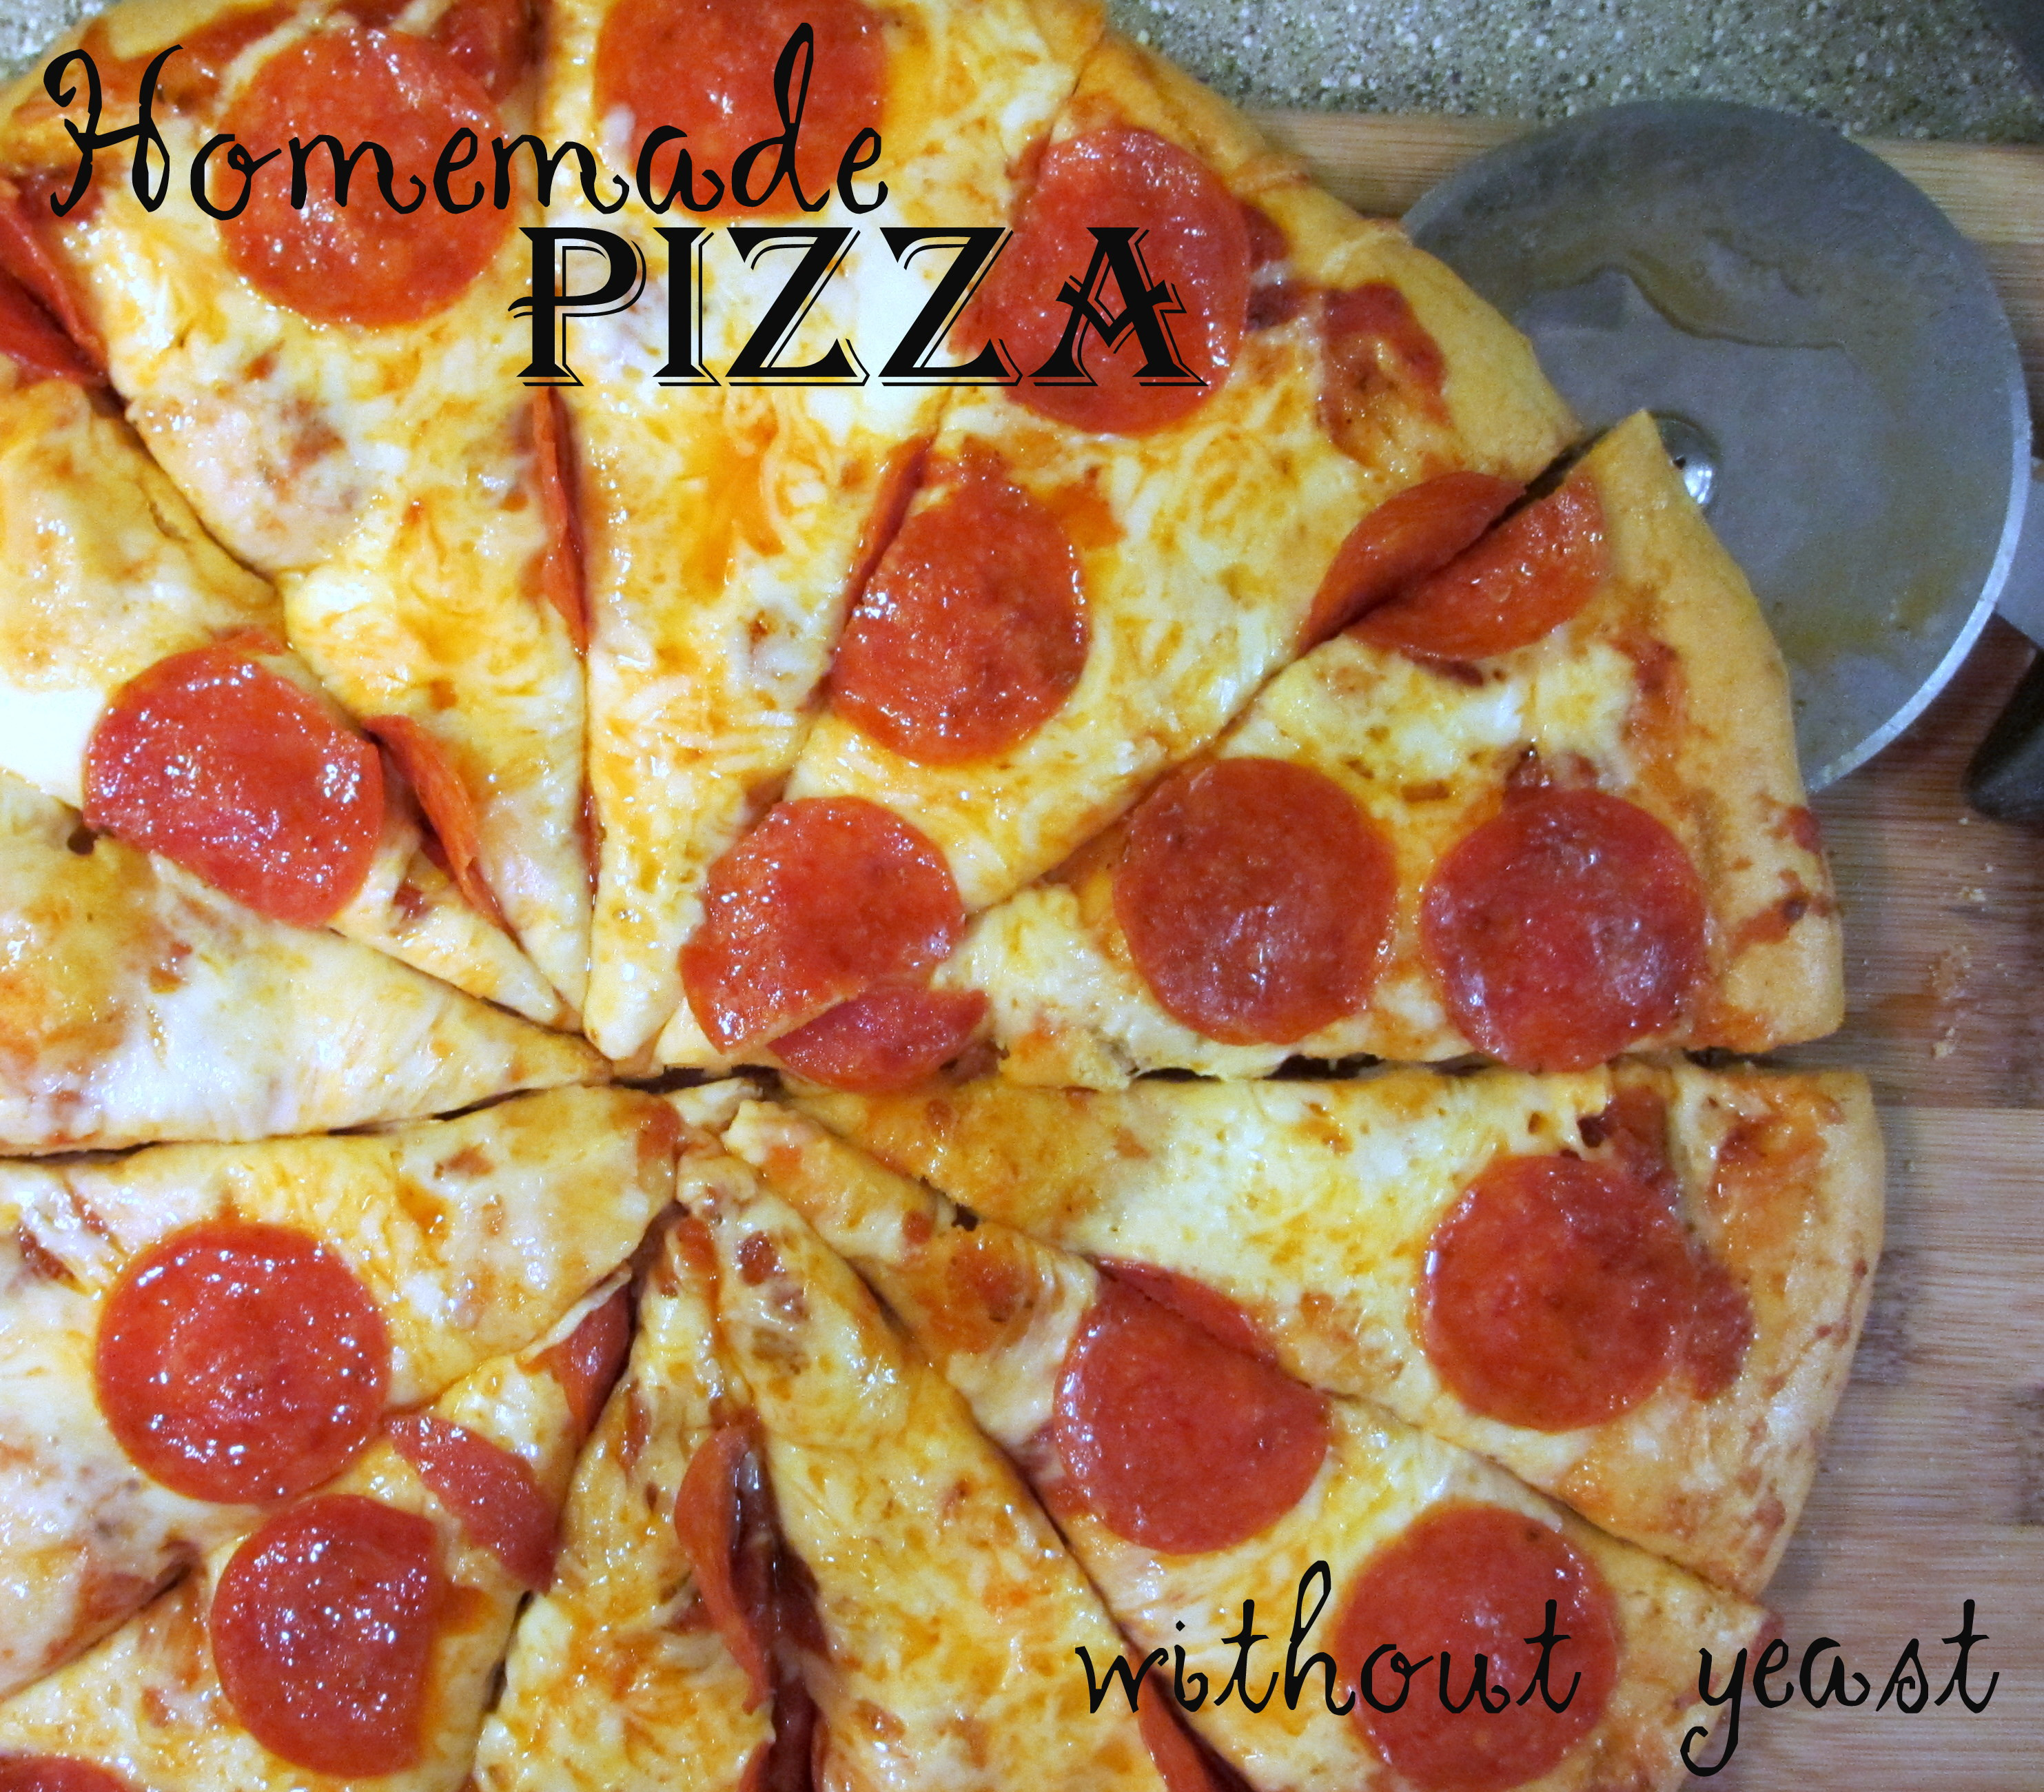 Homemade Pizza Dough Without Yeast  homemade pizza dough recipe without yeast